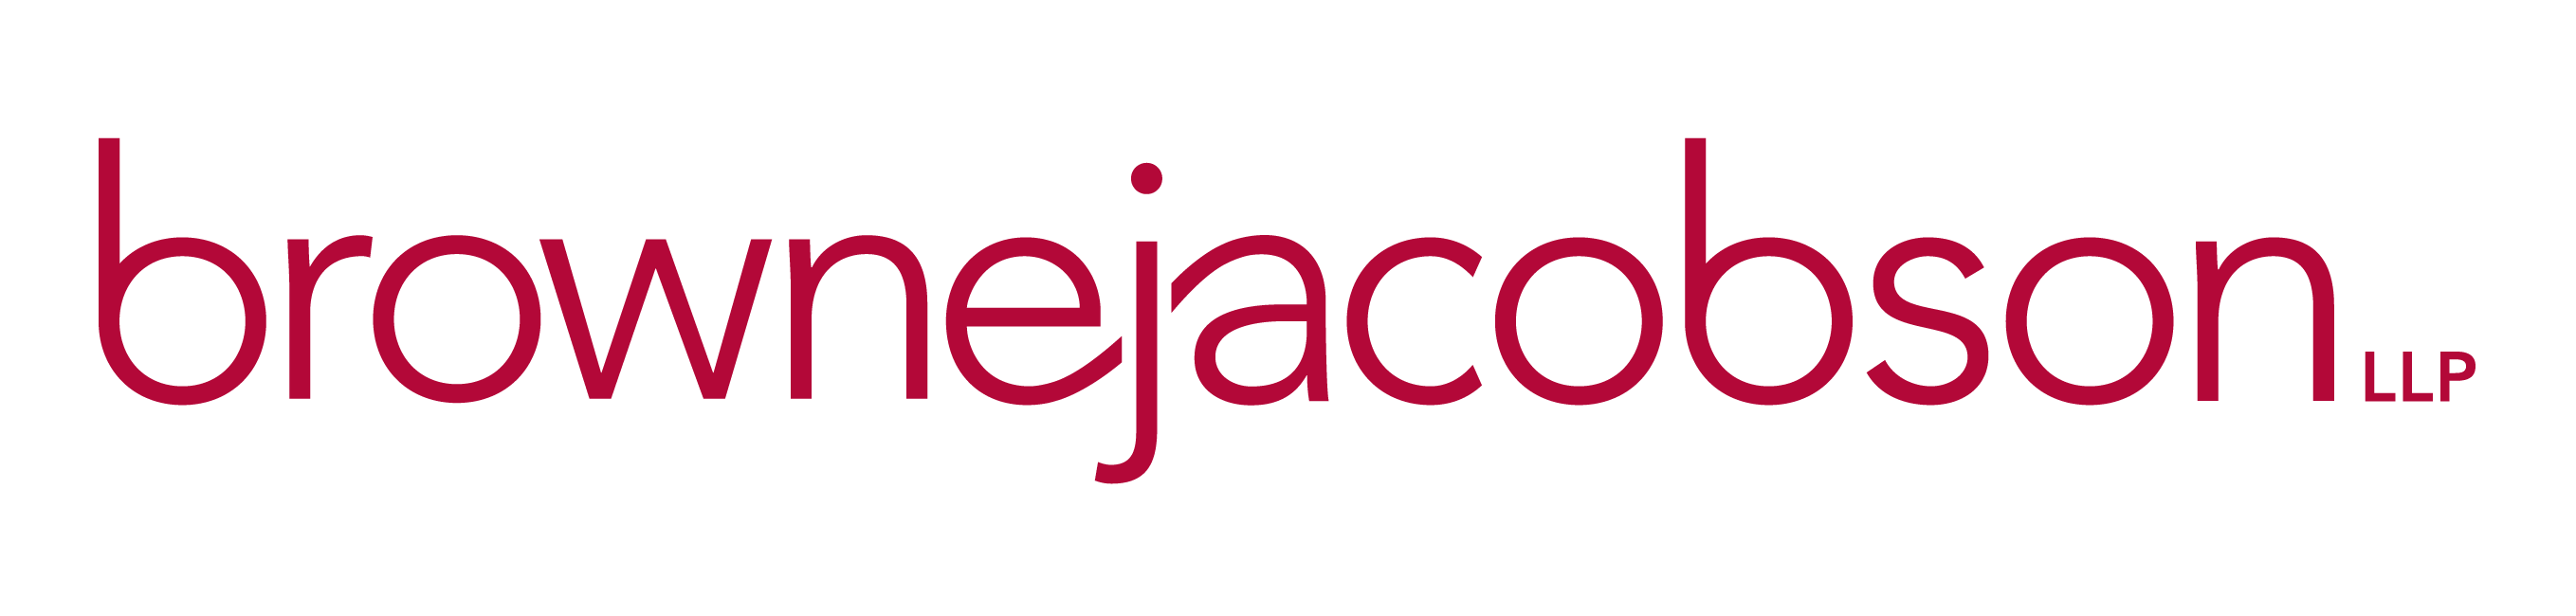 brownejacobson Logo